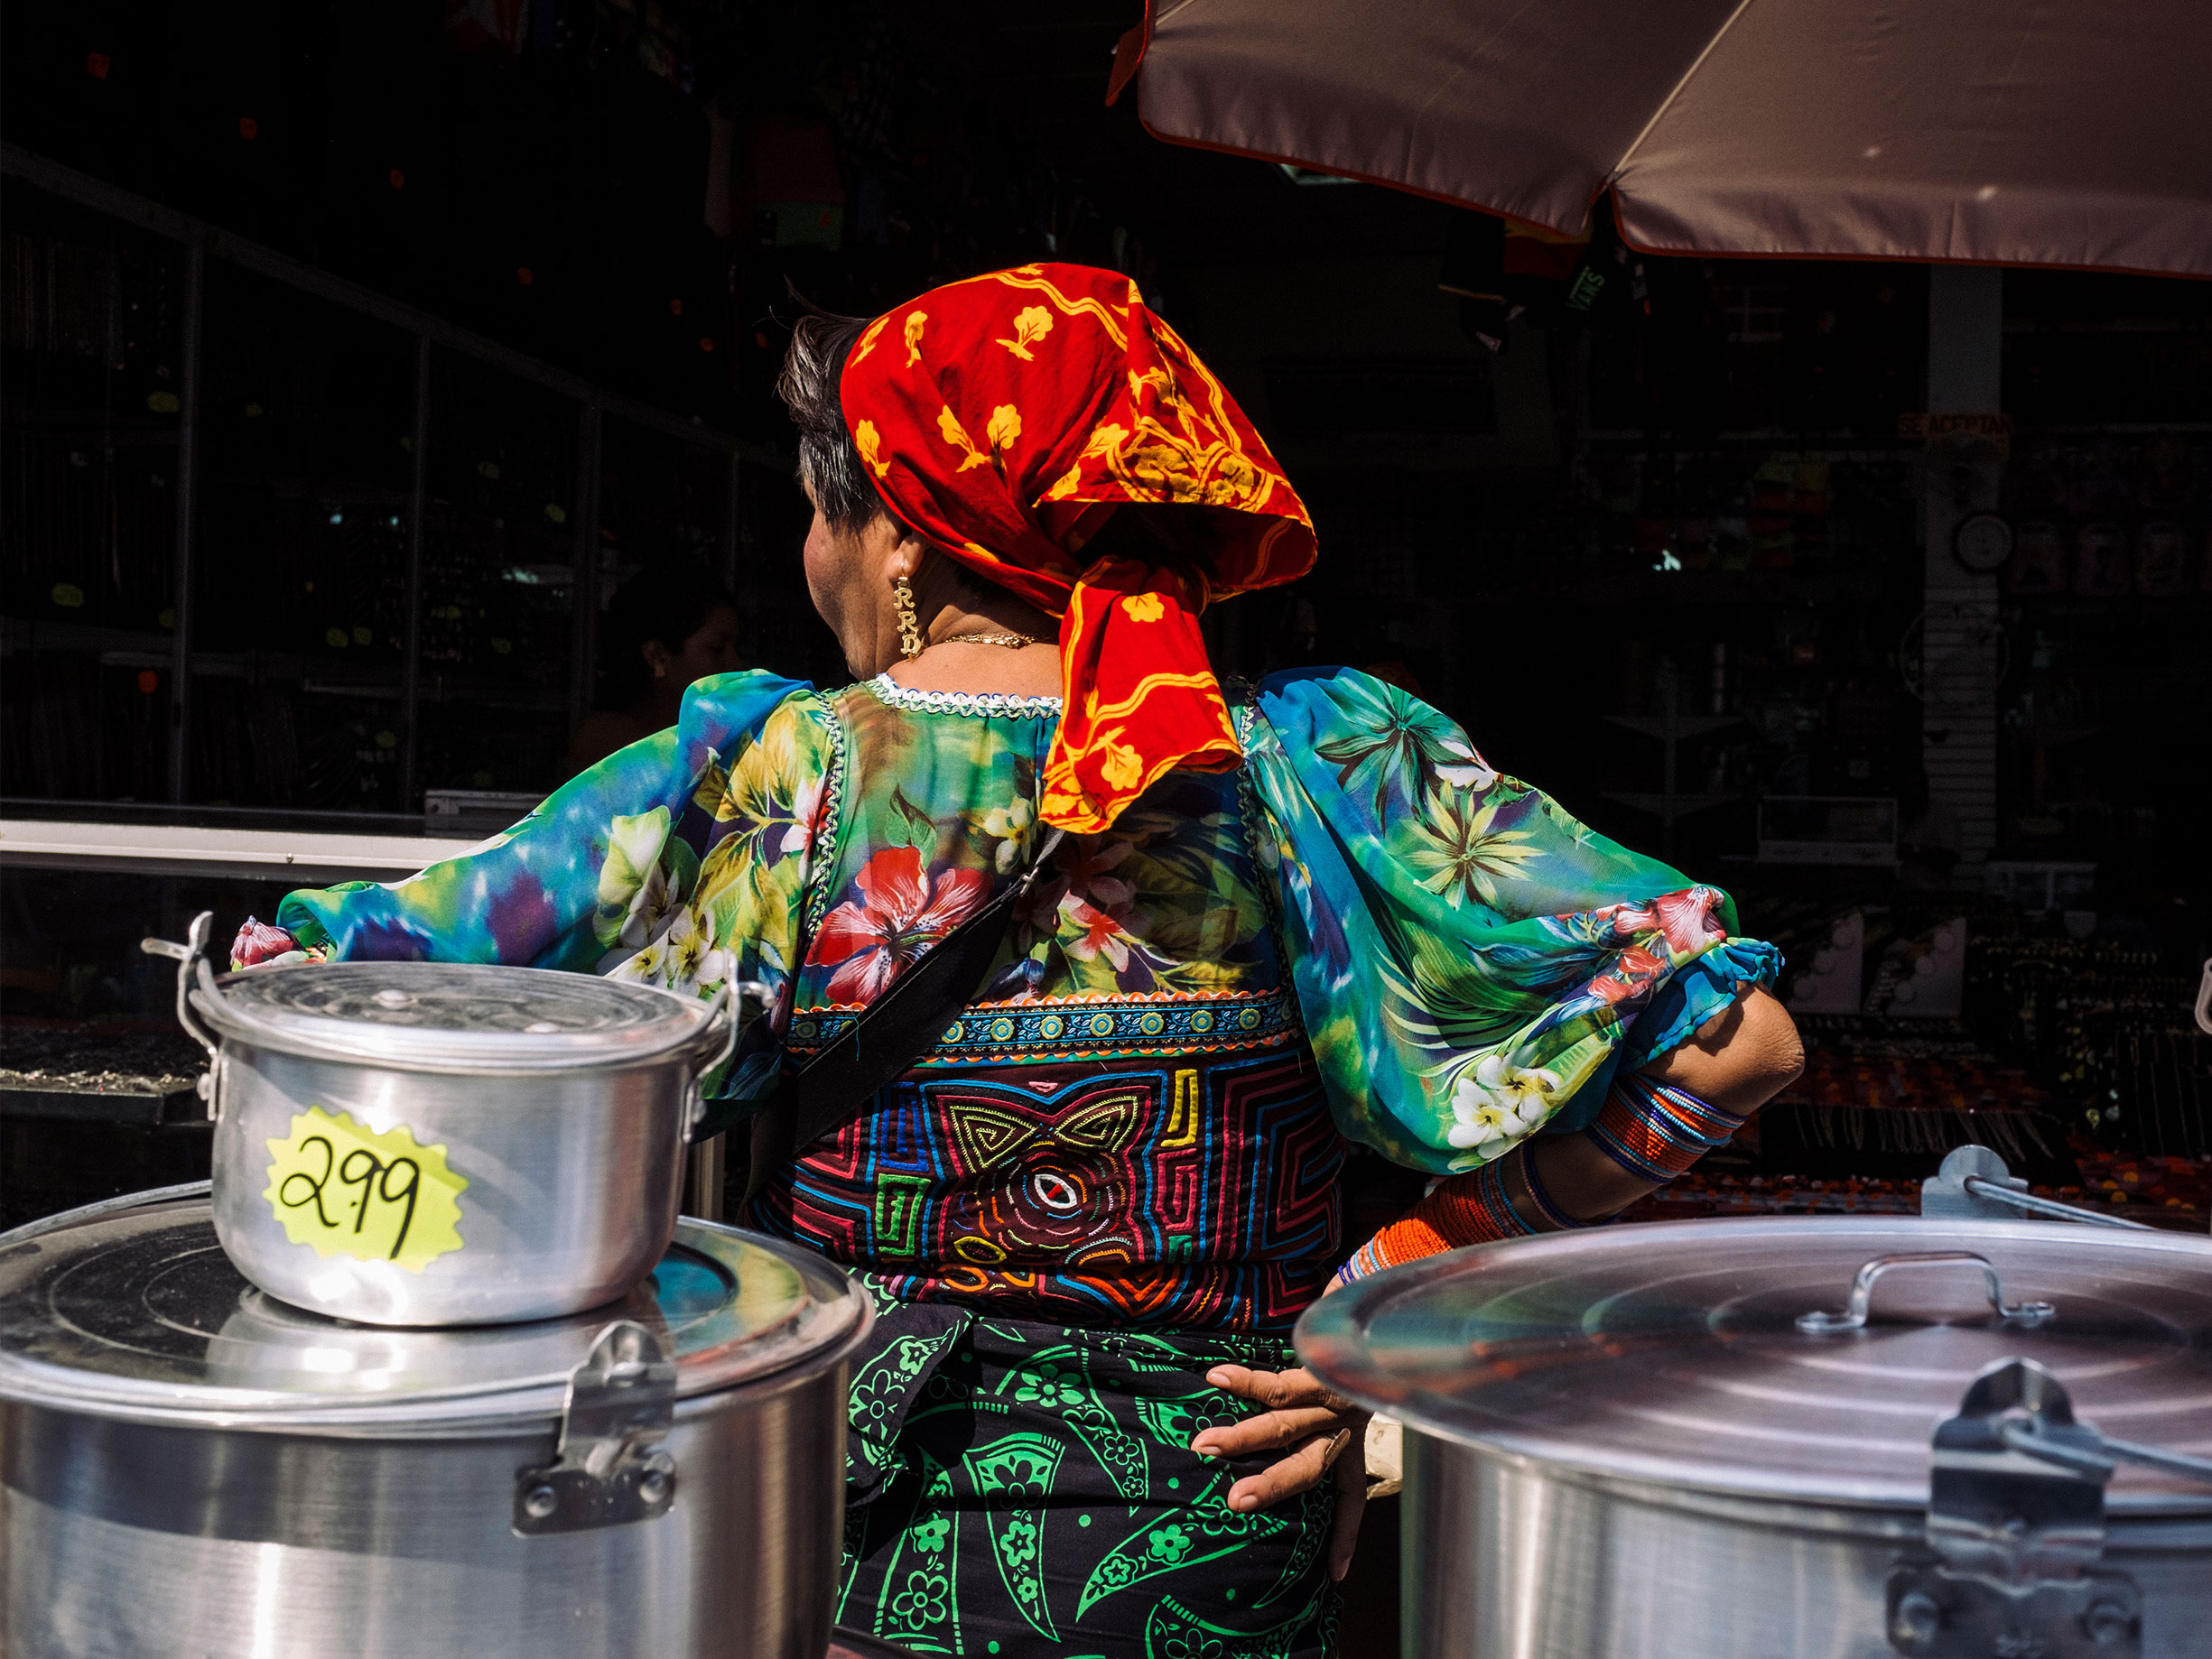 Woman small business owner in Latin American urban marketplace standing in front of market stall